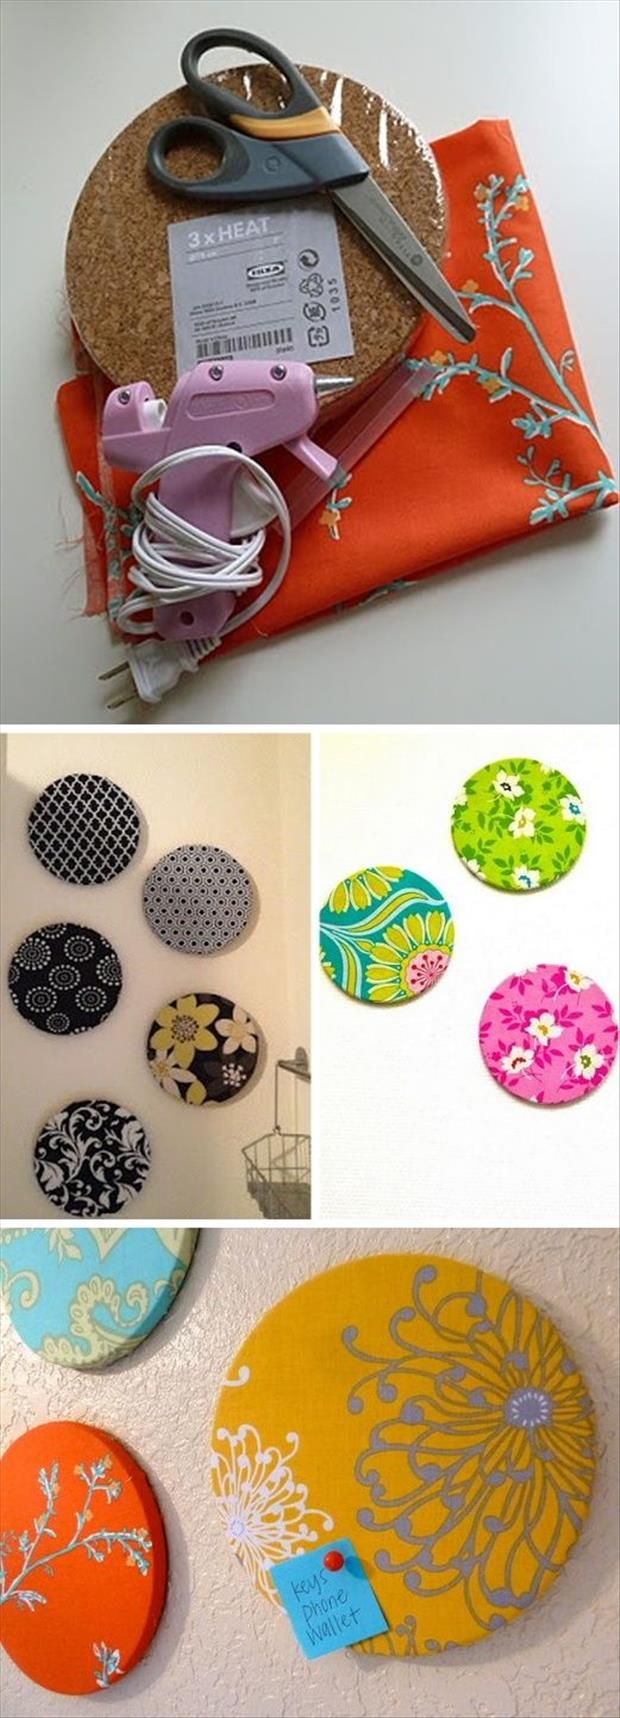 Amazing Do It Yourself Craft Ideas - 40 Pics | FAÇA VOCÊ MESMO & RECICLE | Pinterest | DIY, Crafts and Diy wall decor